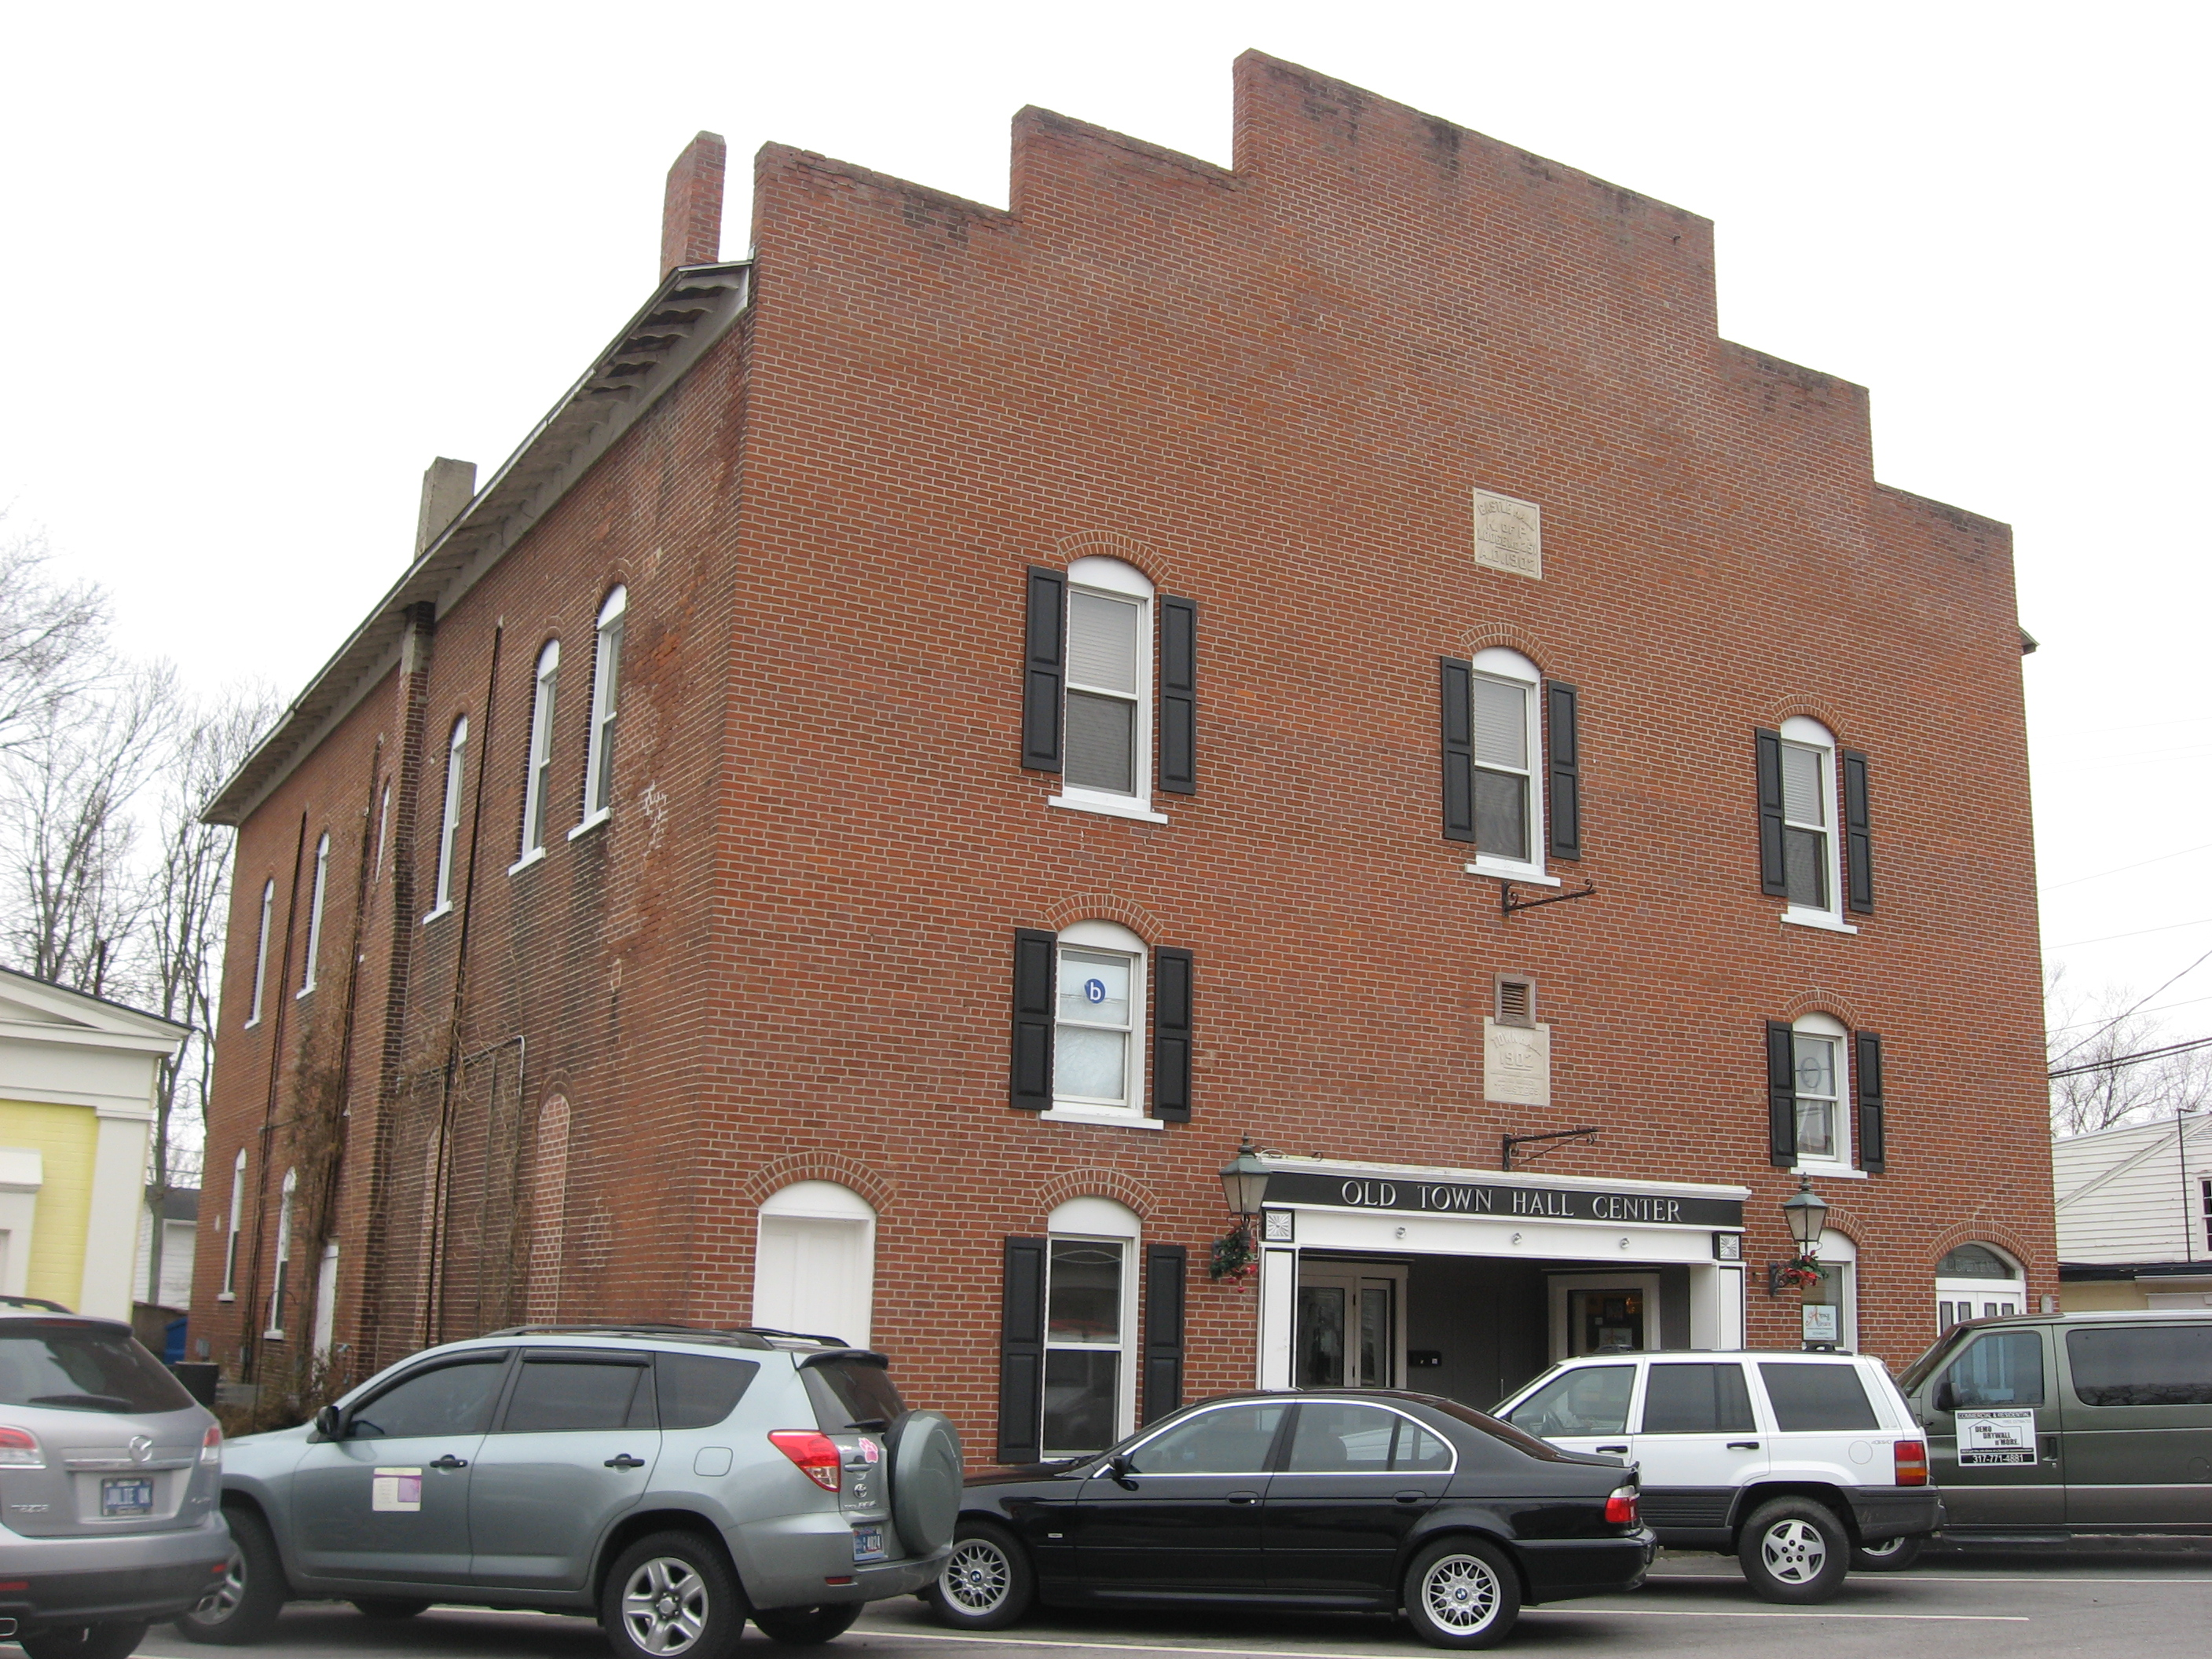 File:Zionsville Town Hall.jpg - Wikipedia, the free encyclopediazionsville town